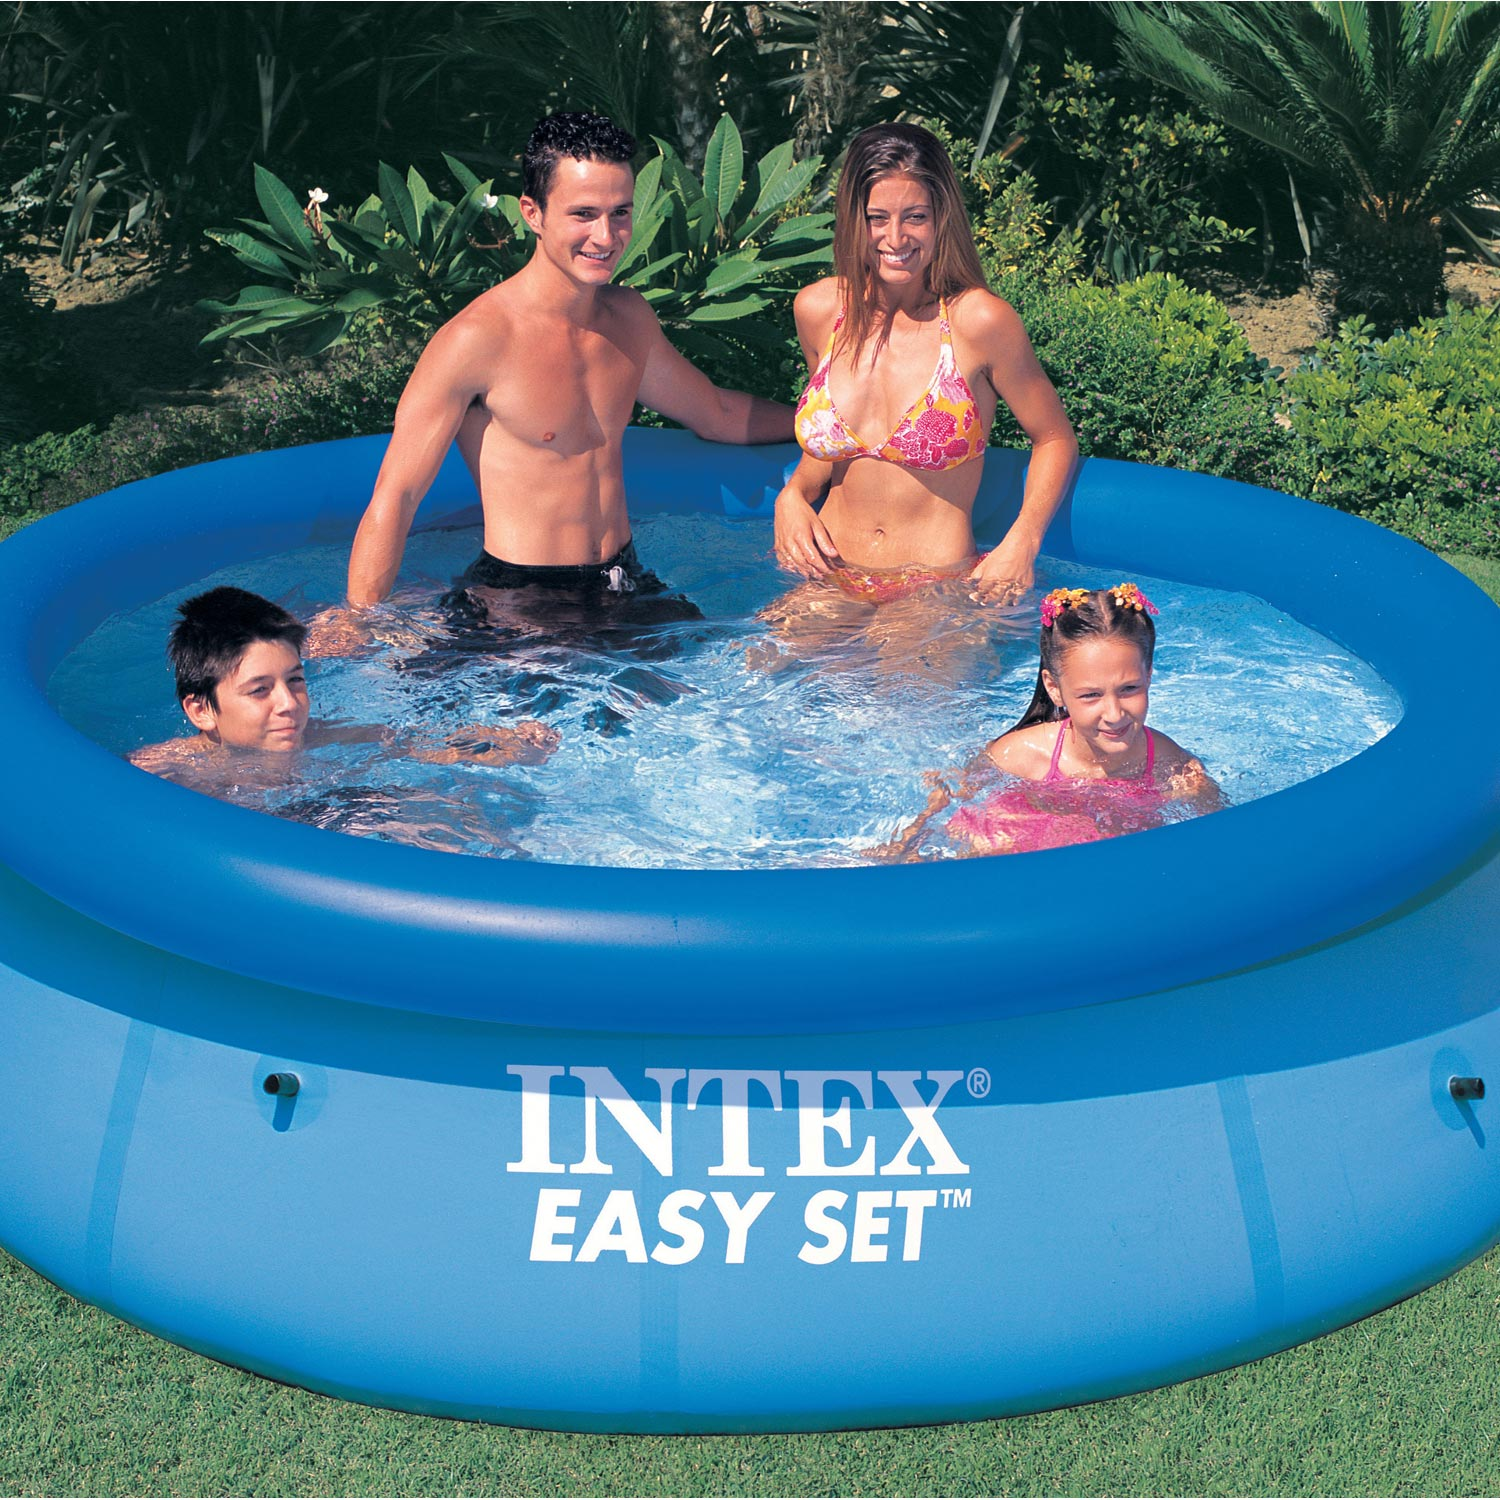 Piscine hors sol gonflable easy set clearview intex ronde for Piscine hors sol amenagee